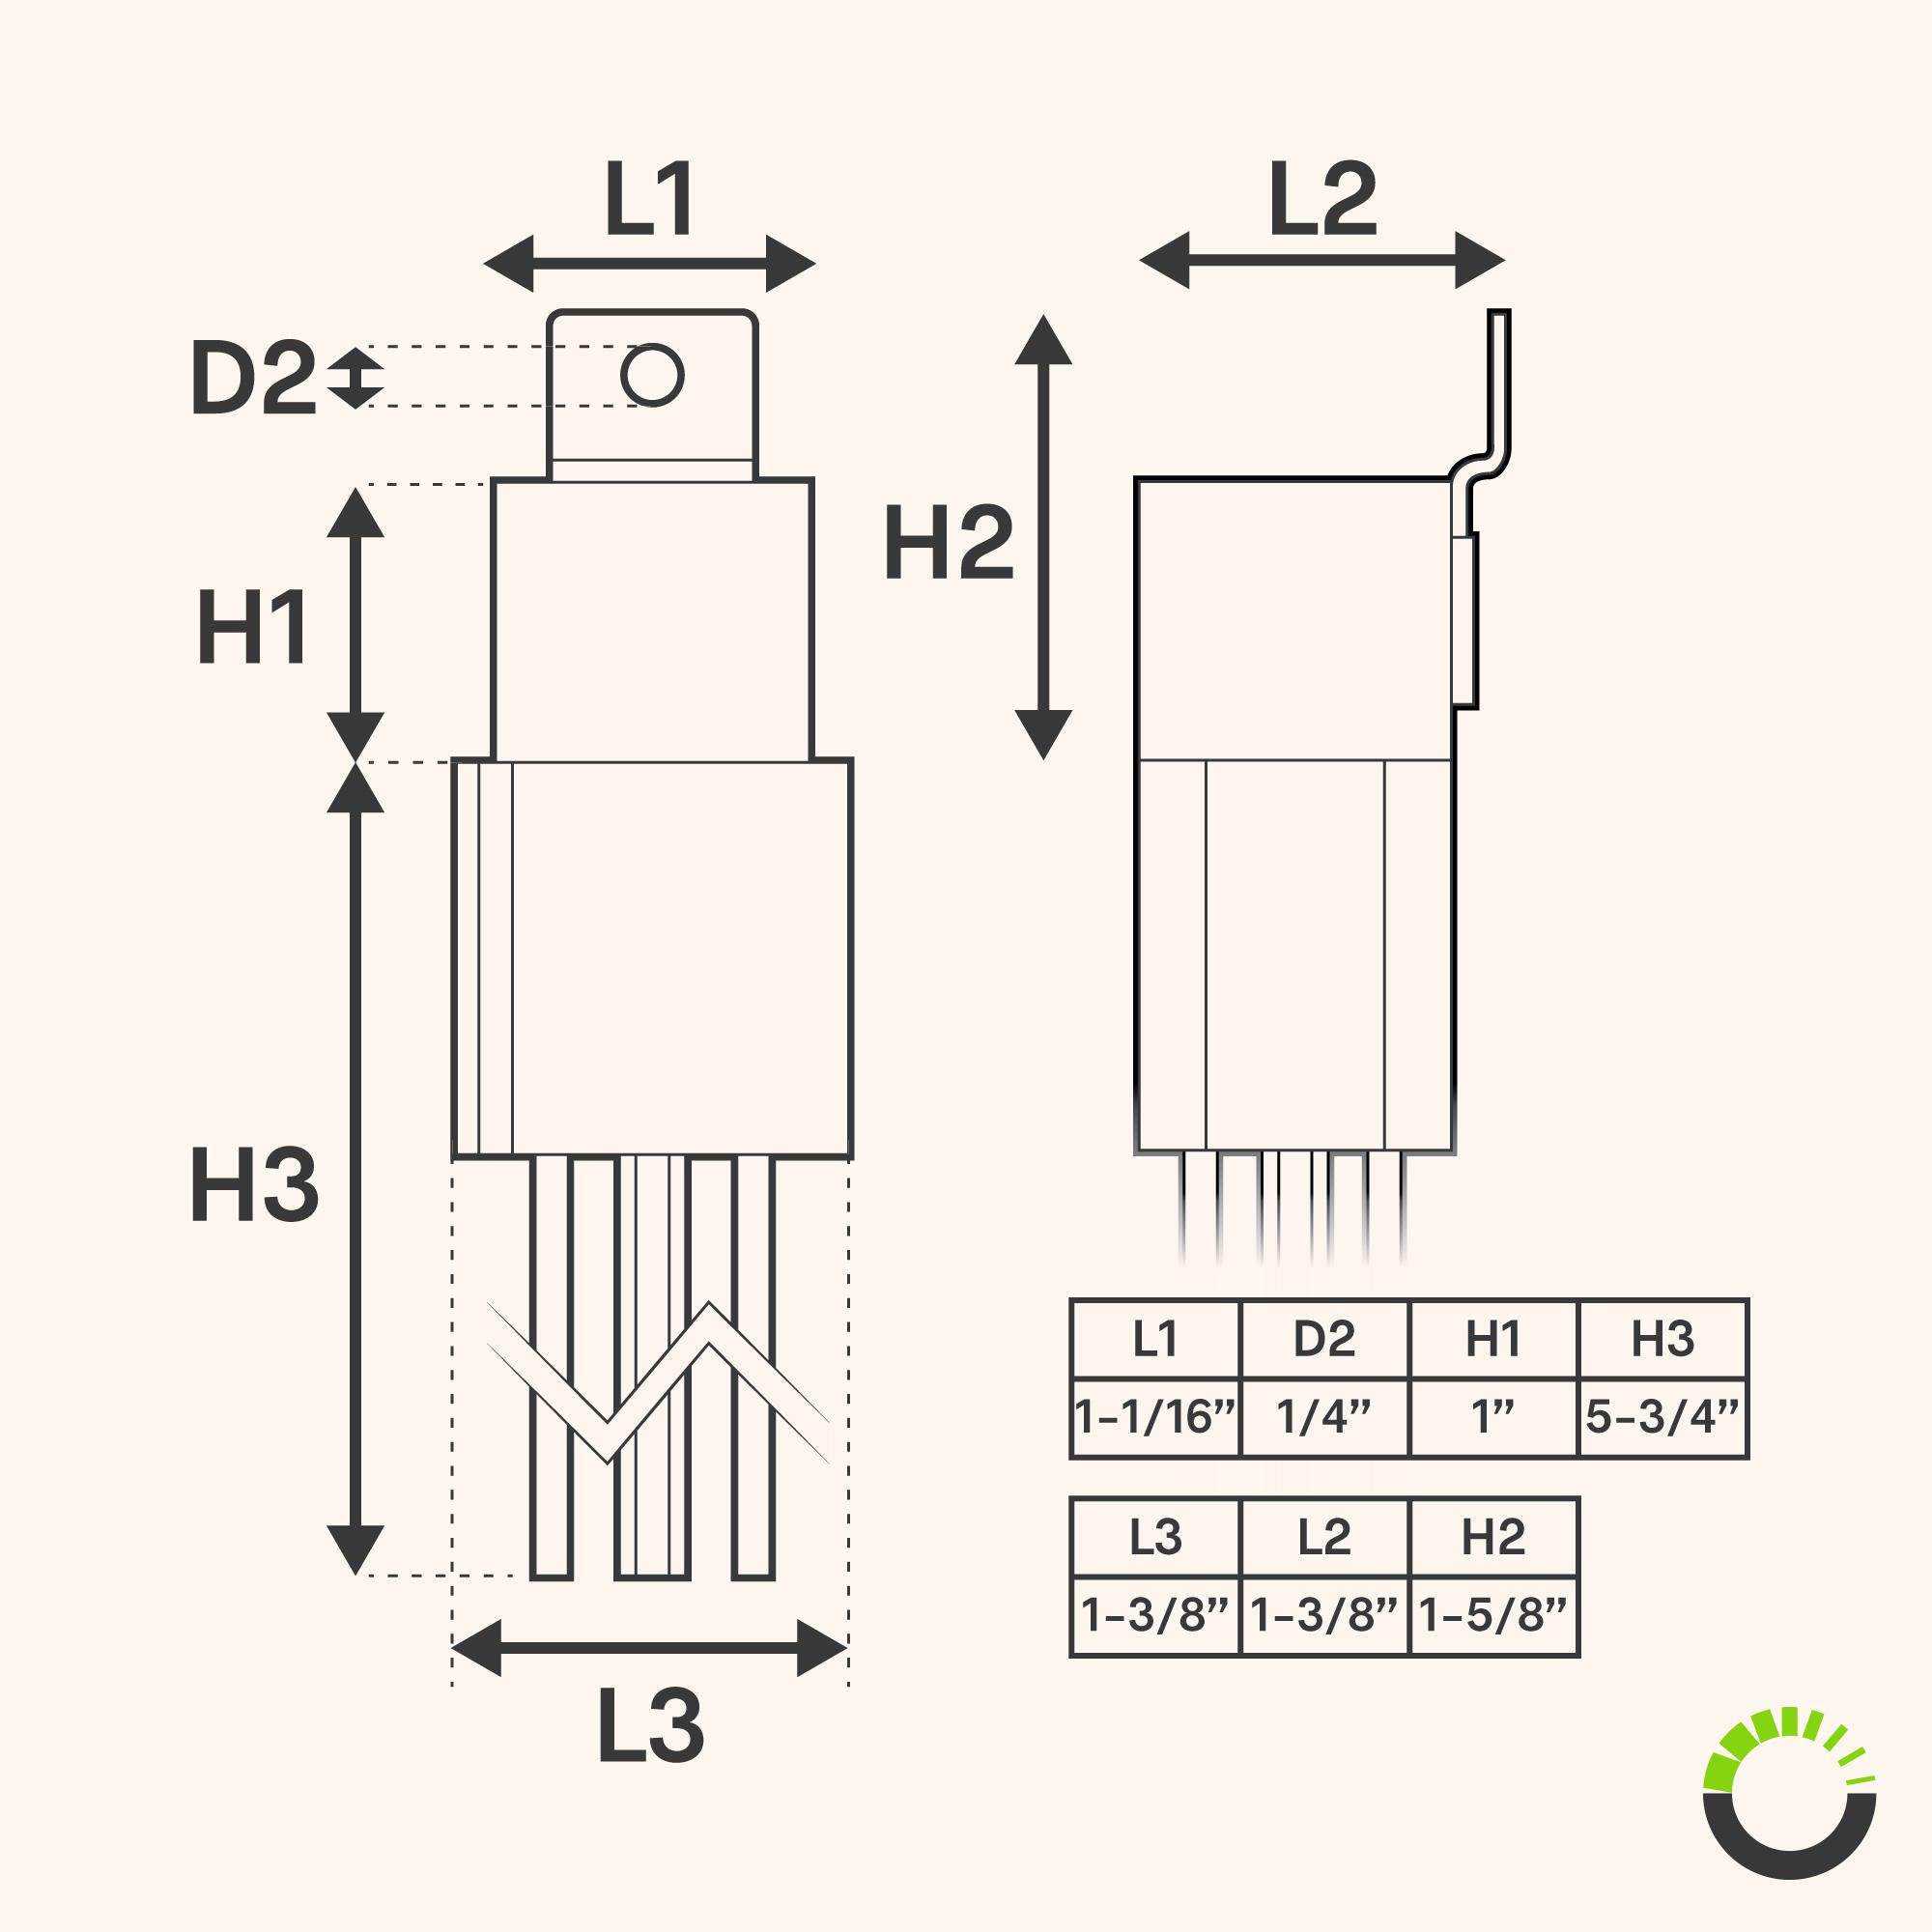 Interlocking Harness Socket Holder 12 AWG Hot Wires 12 Volt Automotive Relays for Auto Fan Cars SPDT 60//80 Amp Heavy Duty ONLINE LED STORE 5 Pack Bosch Style 5-Pin 12V Relay Kit